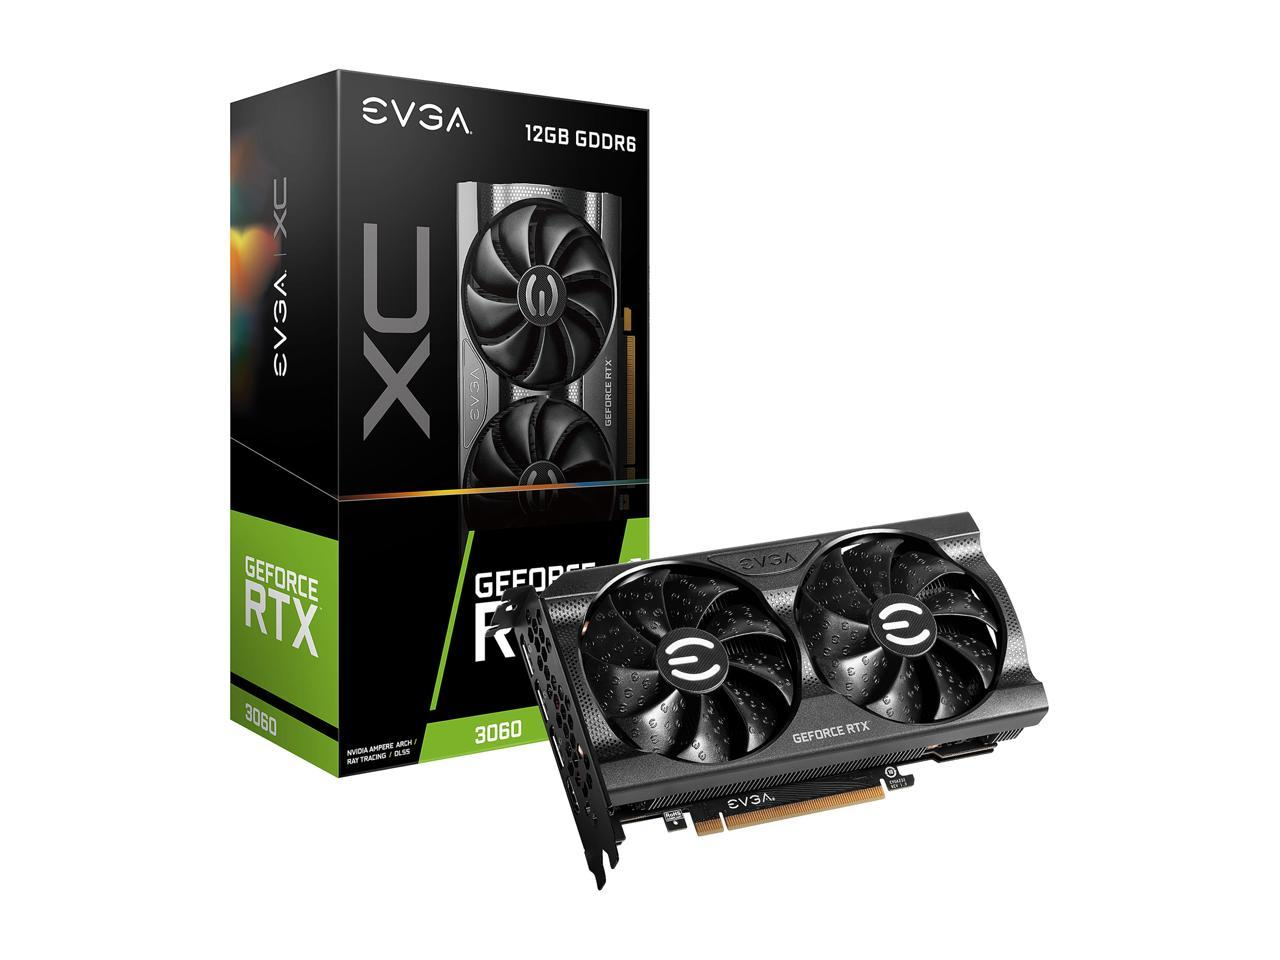 EVGA GeForce RTX 3060 XC GAMING, 12G-P5-3657-KR, 12GB GDDR6, Dual-Fan, Metal Backplate  + Zotac ZBOX CI329 NANO + EVGA 550W PSU BUNDLE IN STOCK